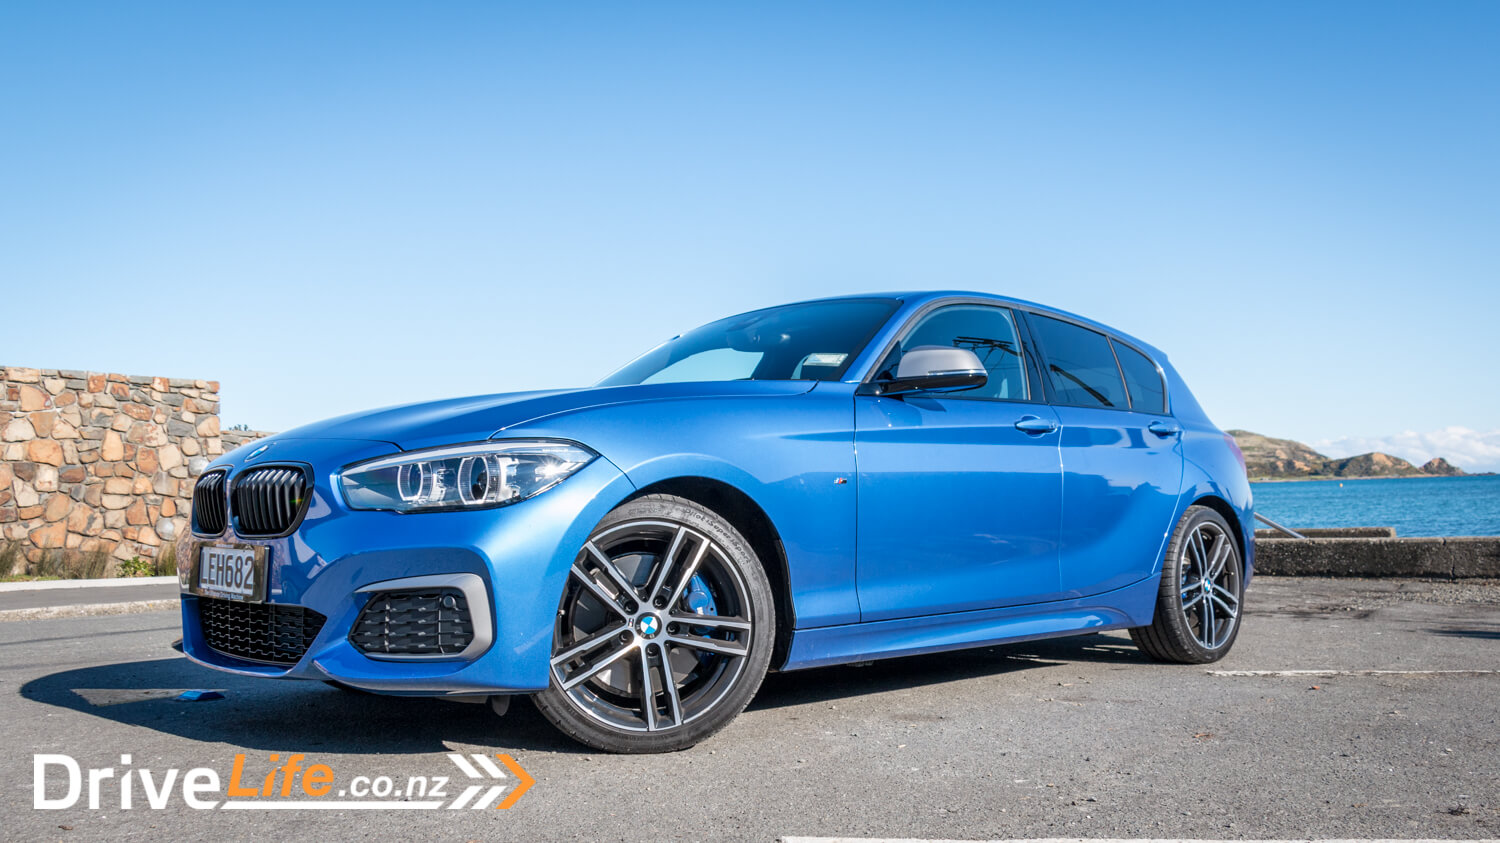 2018 Bmw M140i Car Review Pocket Rocket Drivelife Automotive Fuse Box Nz Sent Us The Range Topping So We Could Find Out